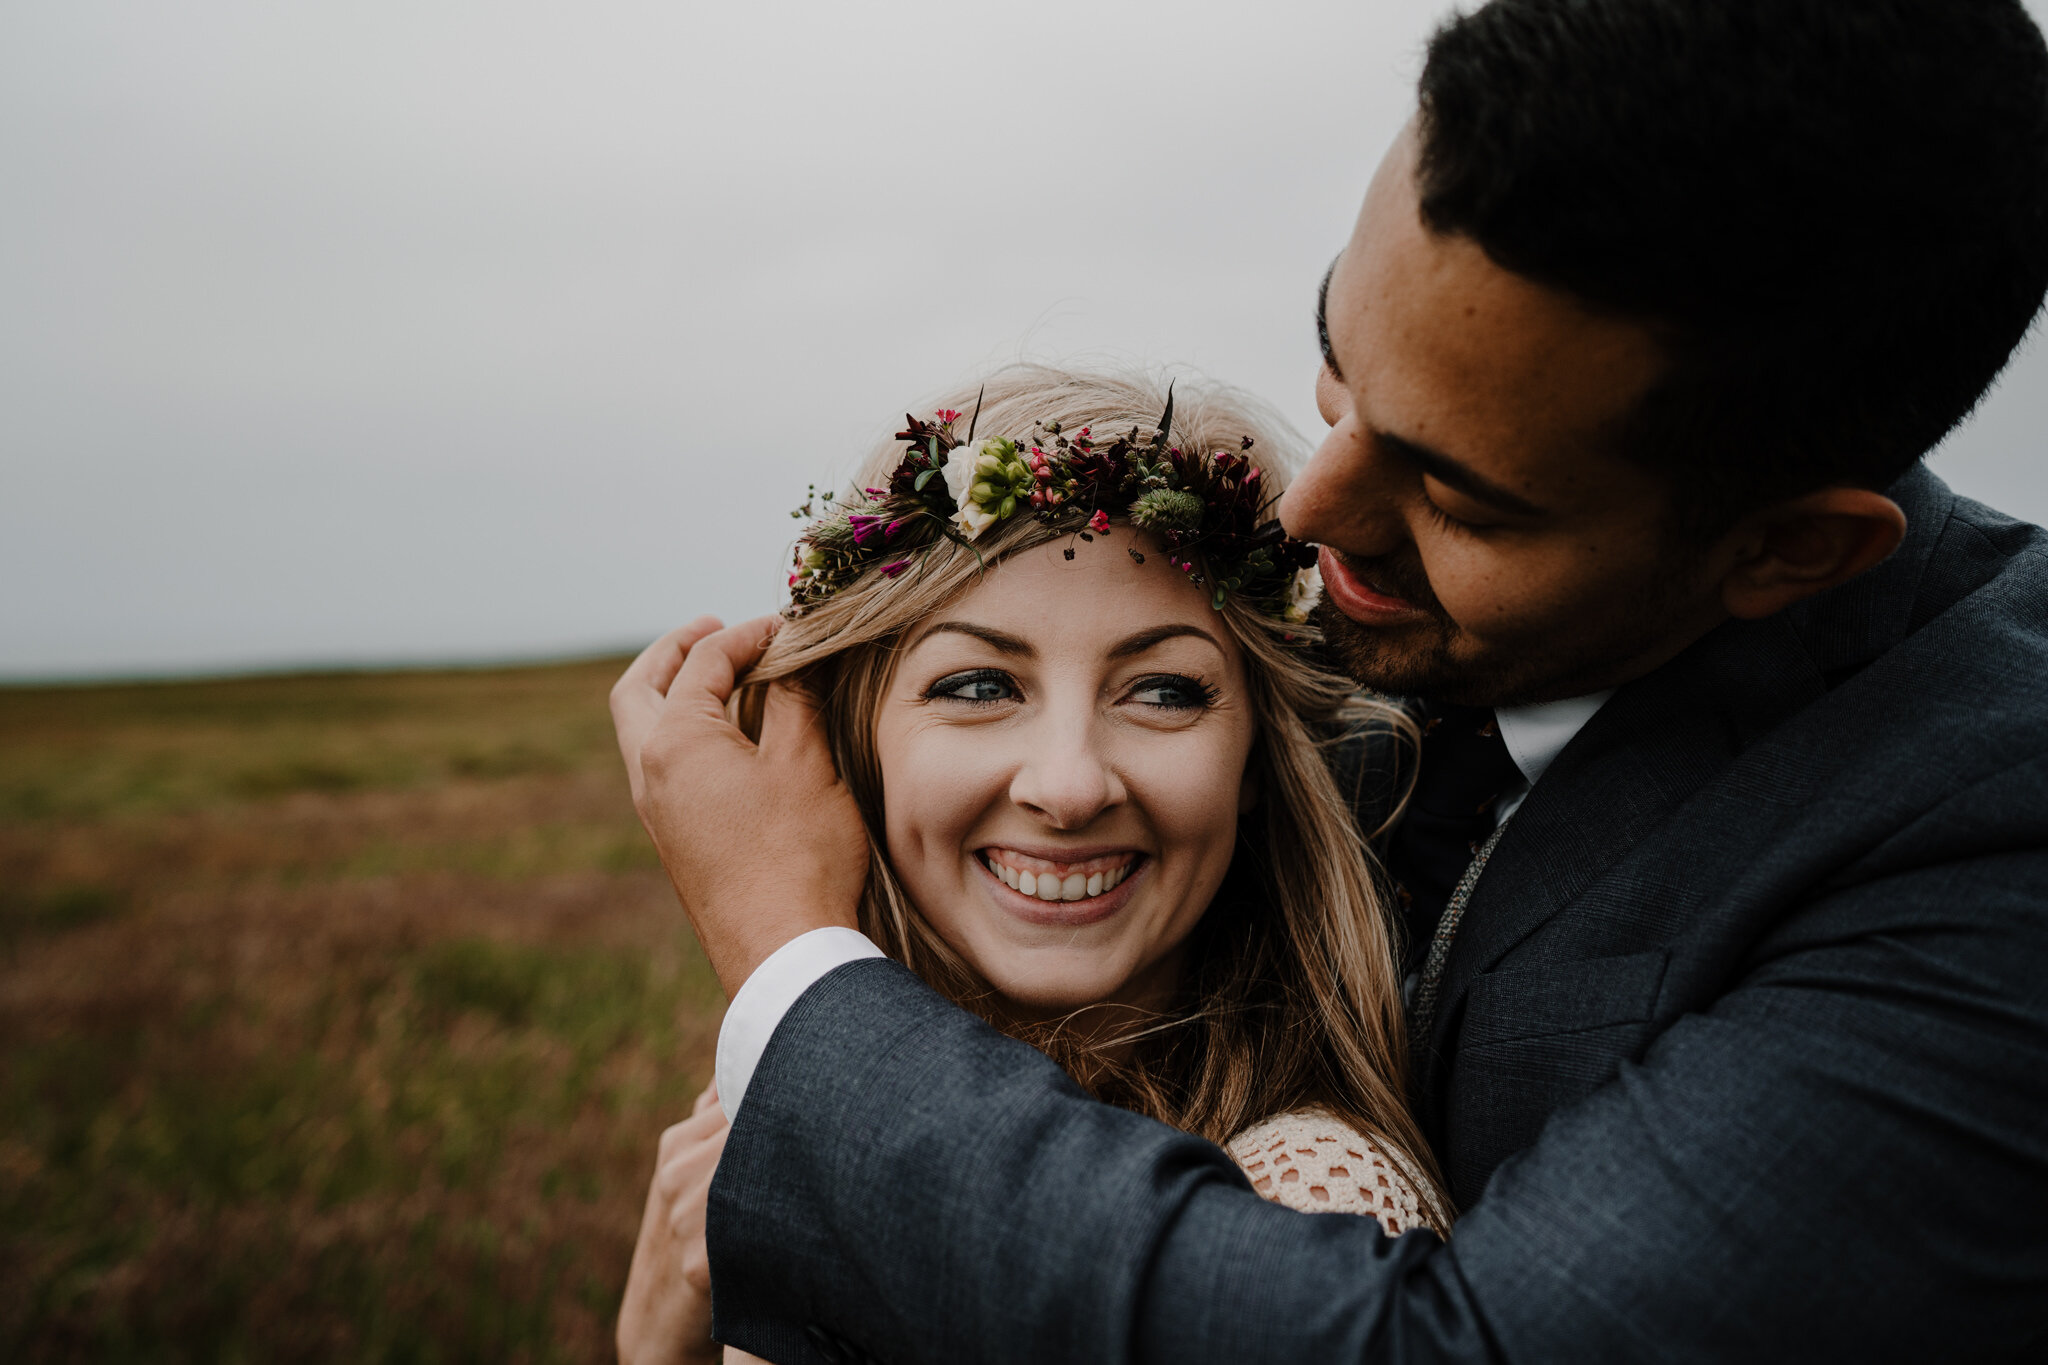 "- ""We absolutely adore Christin + Gareth!!! We travelled to Ireland from the US, and being photographers ourselves, we knew exactly the look and style and vibe we were going for and searched for days trying to find the perfect local photographers. When we finally found the Martins we were SOLD. From their online presence to their galleries... We just knew they were perfect and would capture our anniversary session on the Cliffs of Moher perfectly. They were SO MUCH FUN! And made us feel so comfortable and they captured us absolutely perfectly. I can't thank them enough for these precious memories <3 <3 <3 10 out 10 would recommend them to anyone!""Summer & Adam"